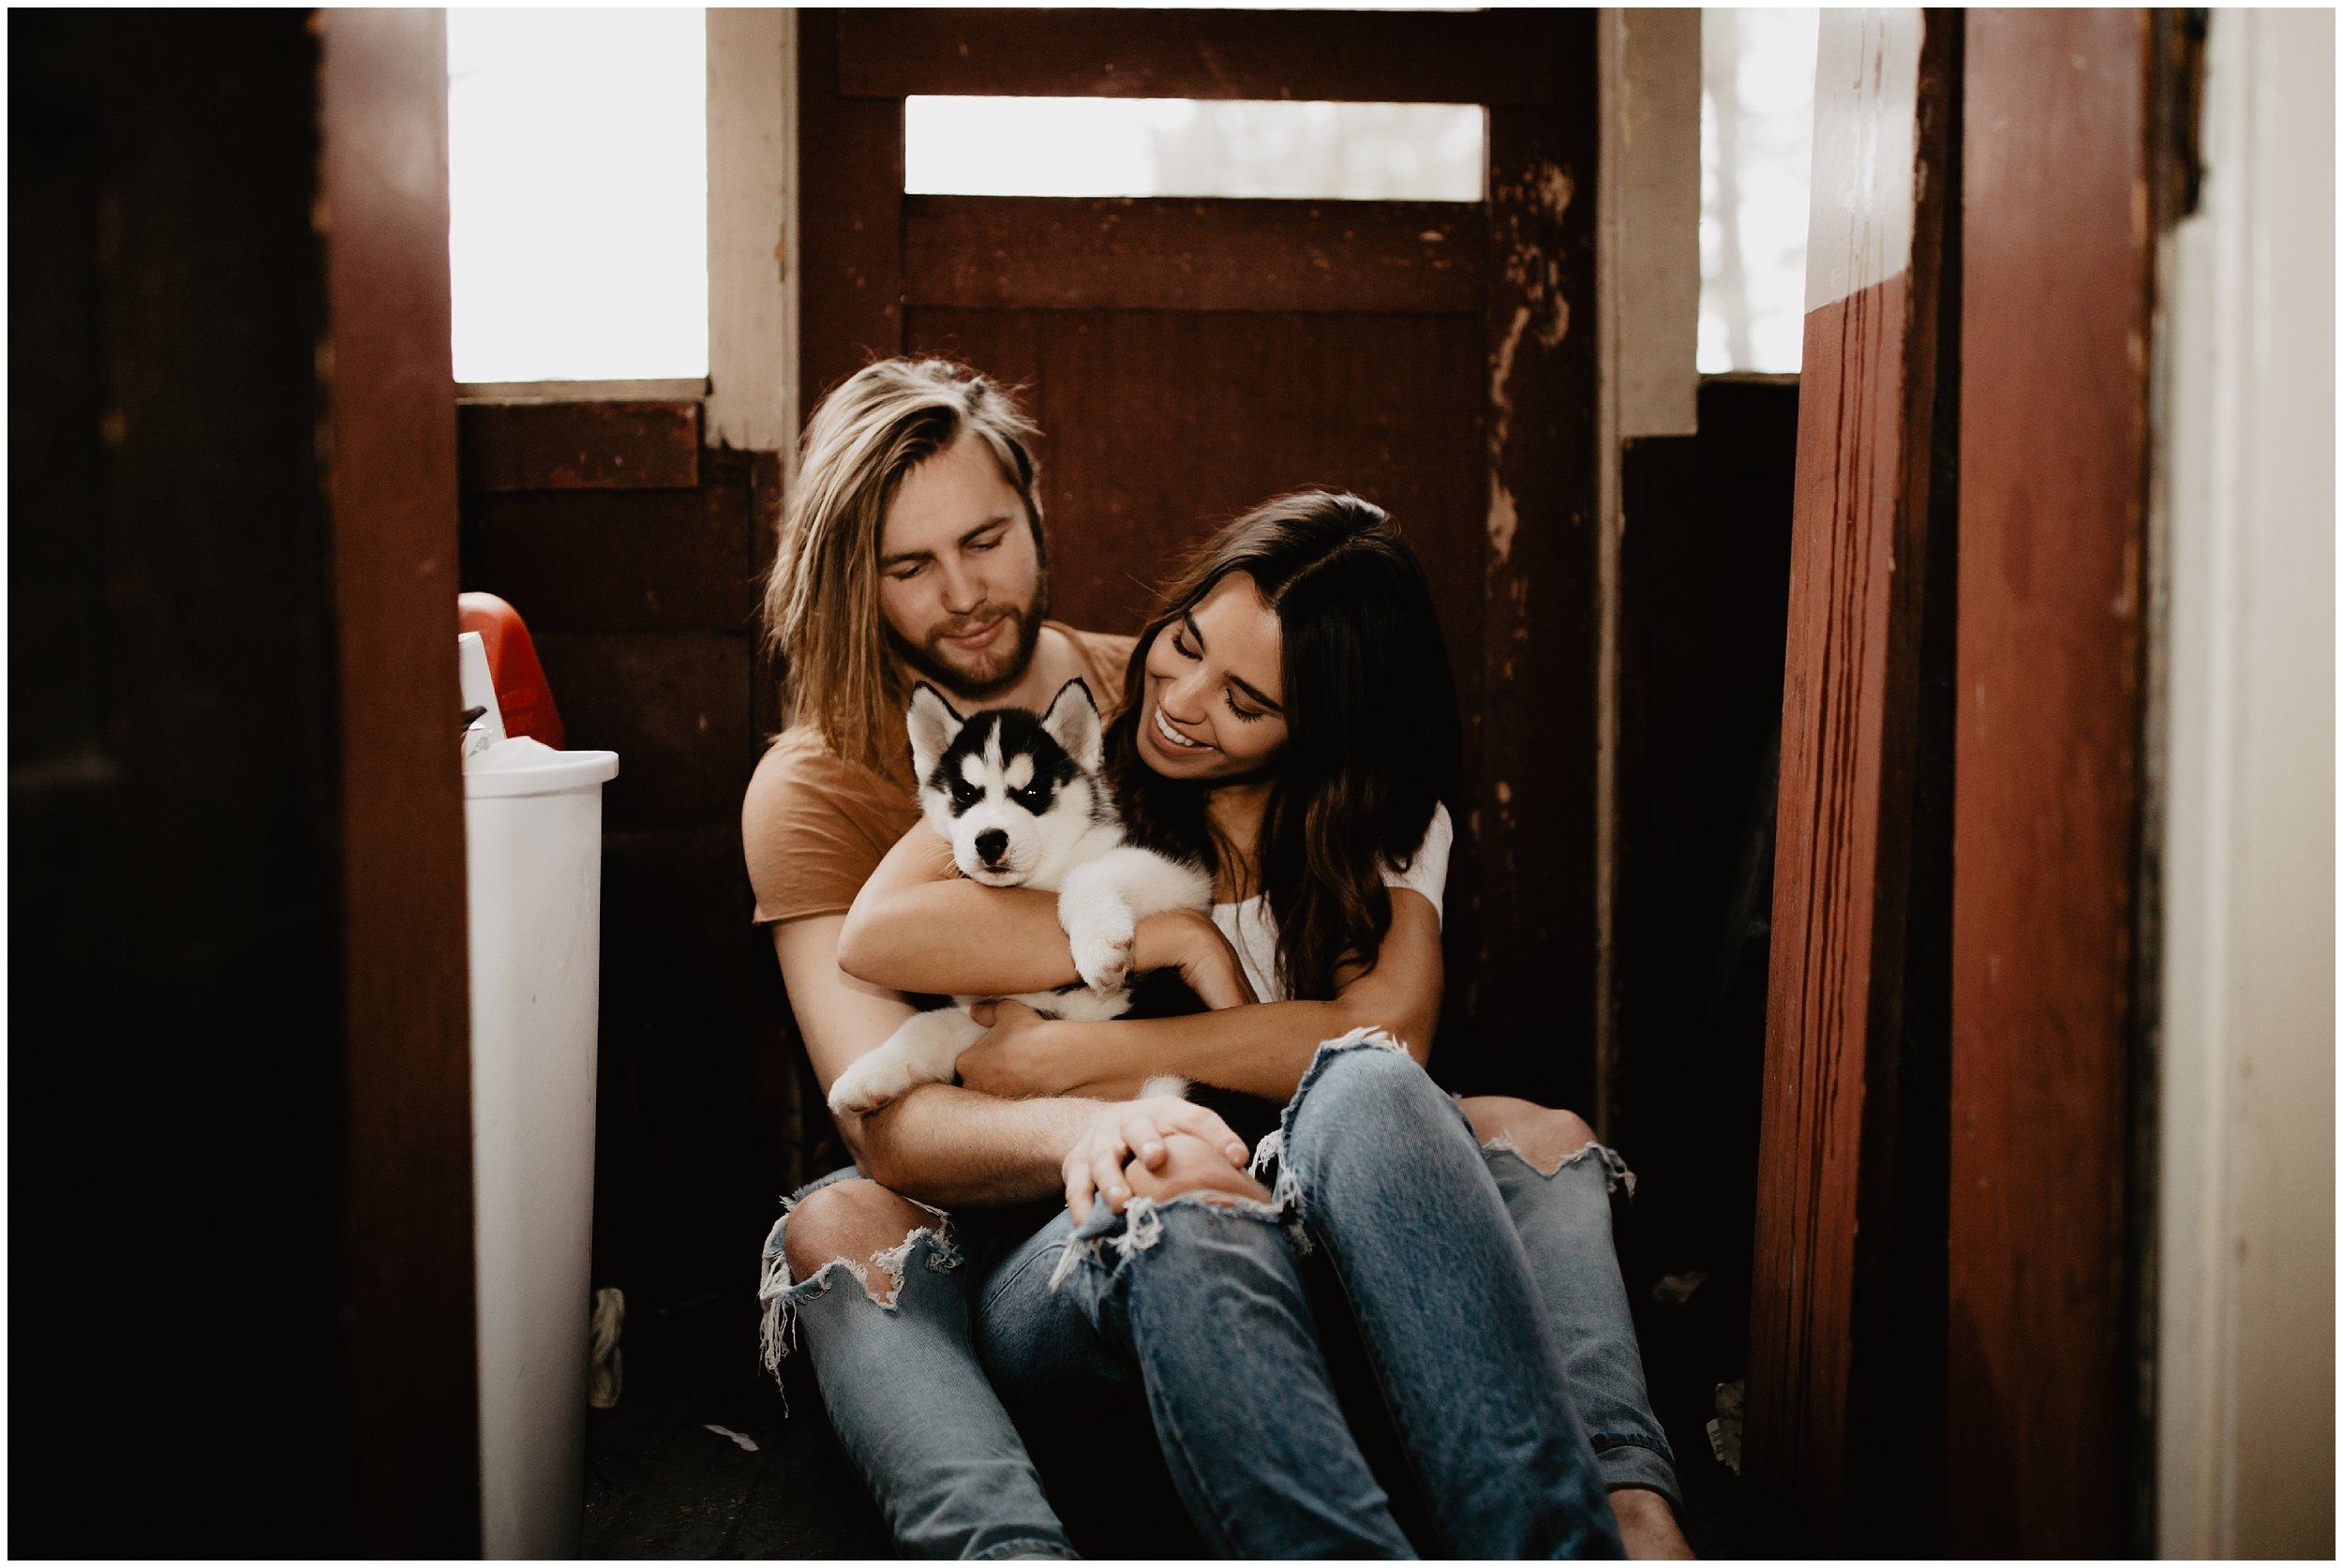 Cute Siberian Husky Puppy | Cassie Trottier Photography In Home Session